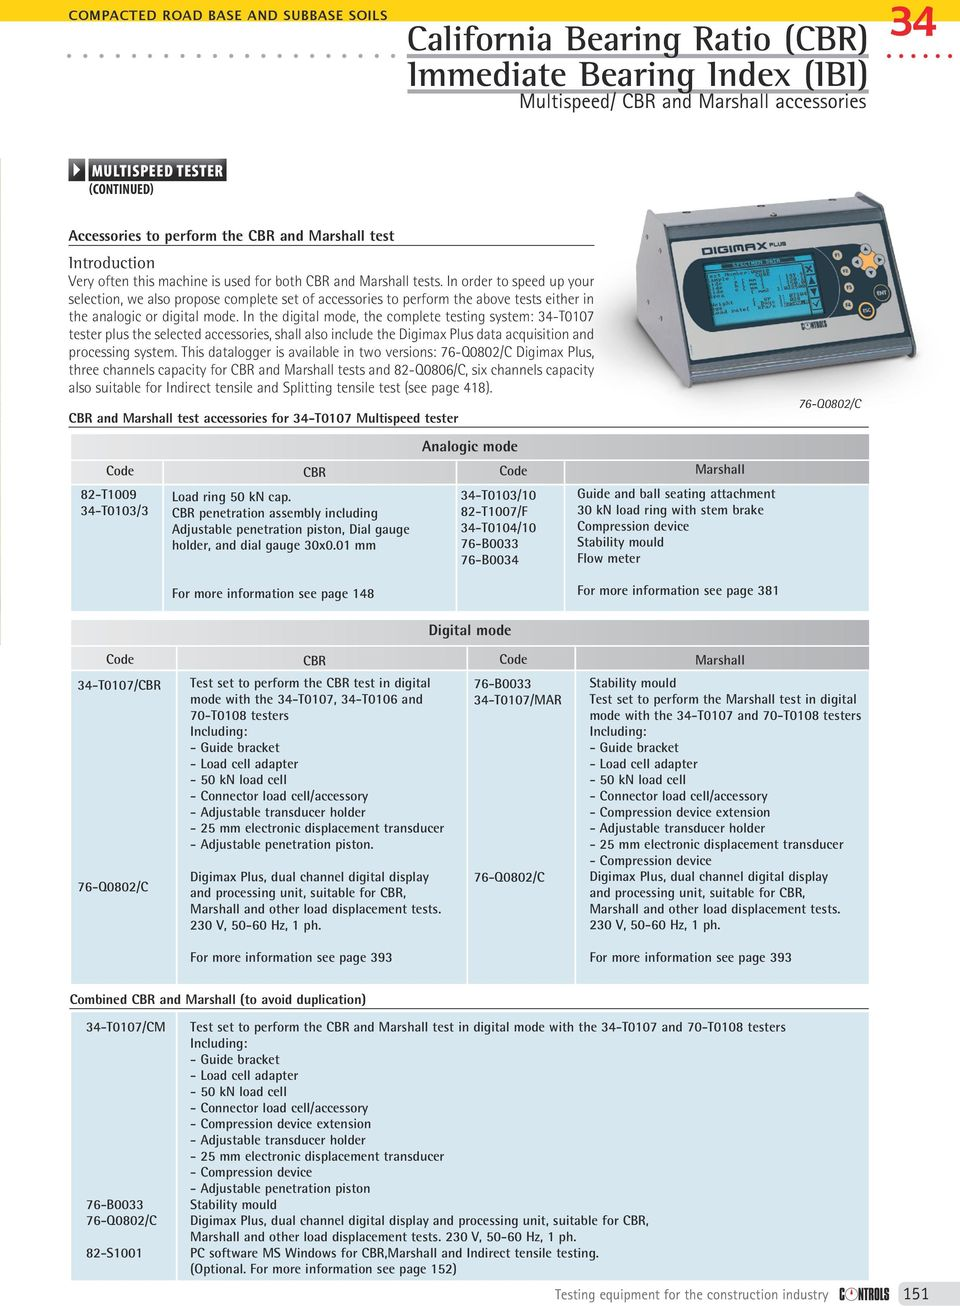 Digimax Plus system, which is fully described below. The digital version can be completed by the 82-S1001 software for use with PC.